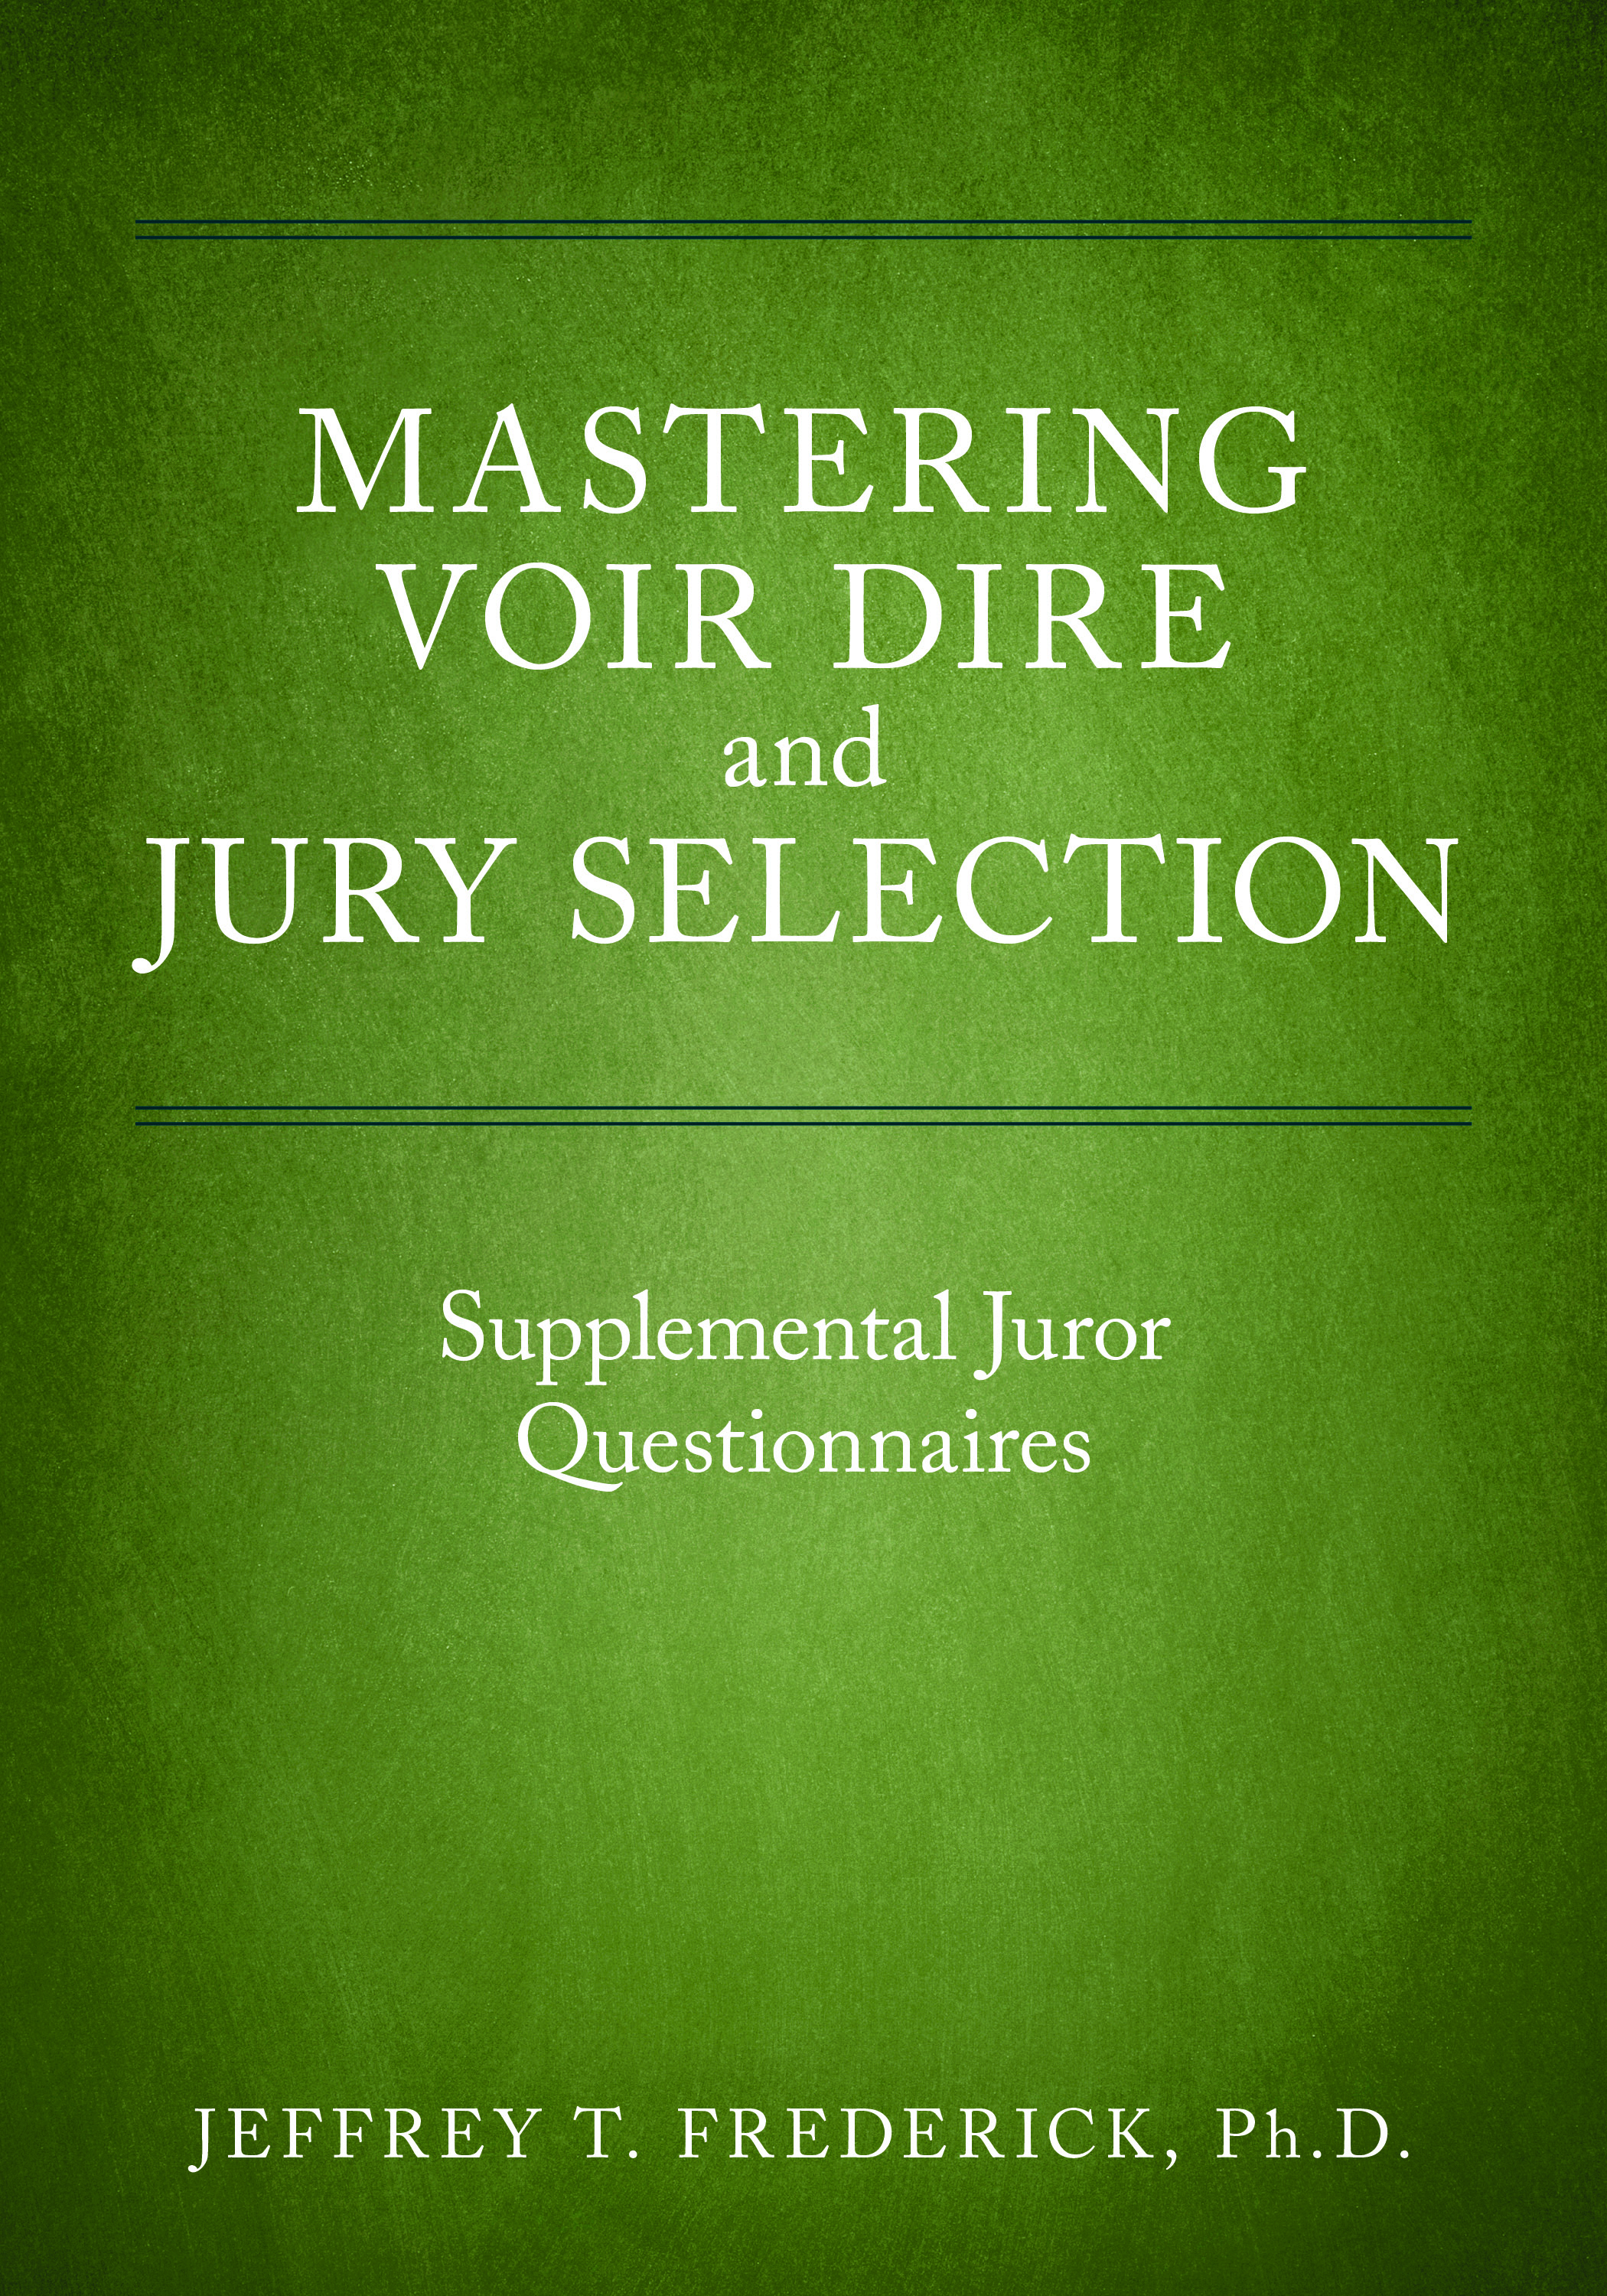 Mastering Voir Dire and Jury Selection: Supplemental Juror Questionnaires